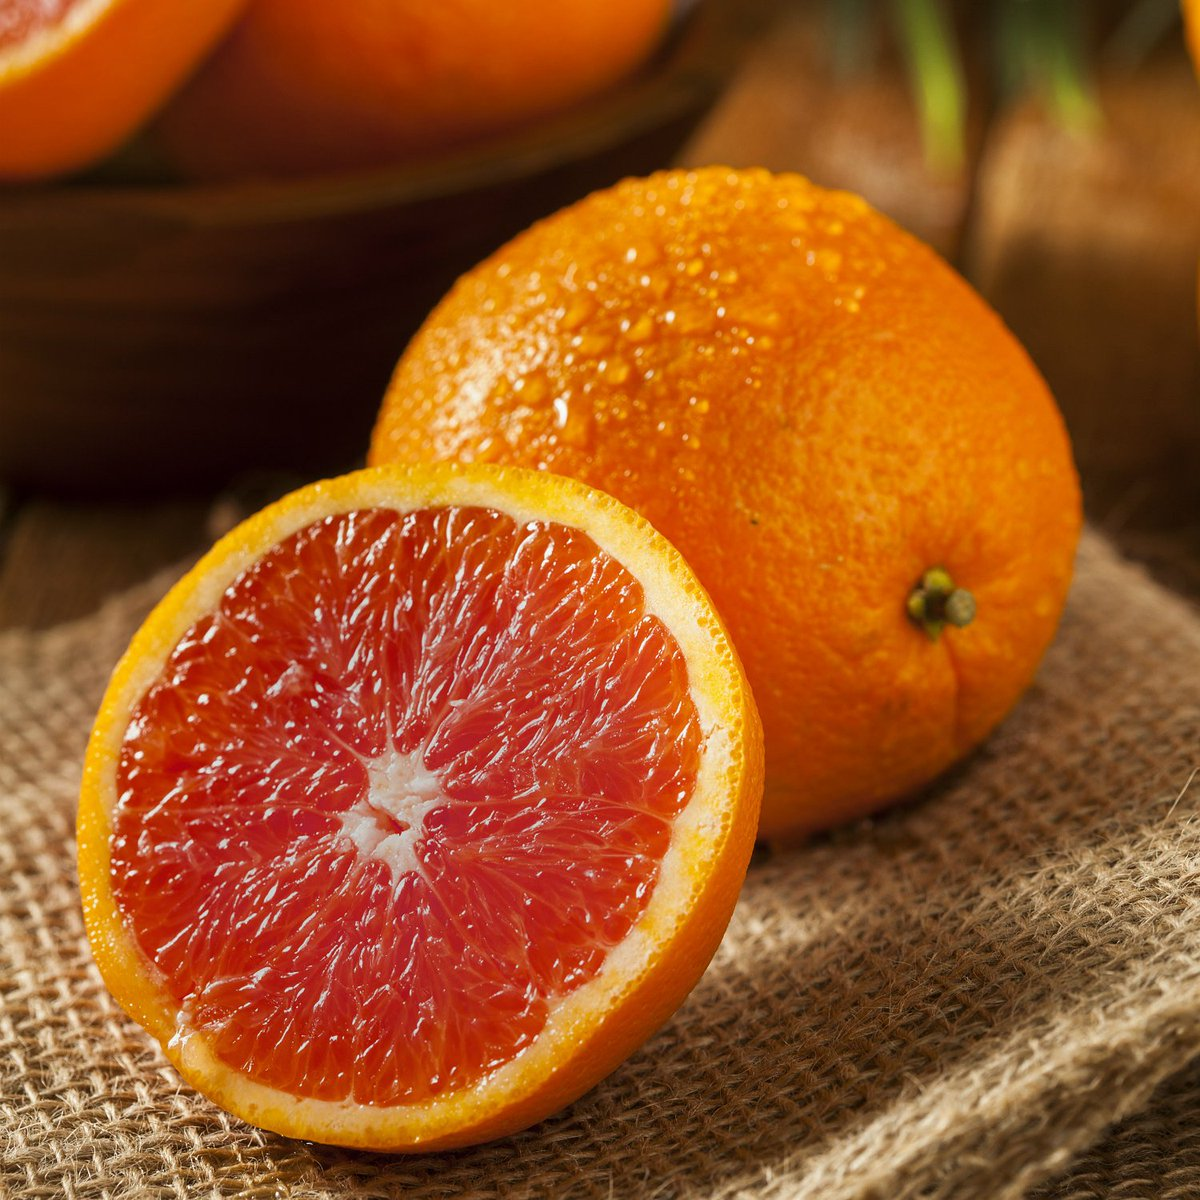 c57b91ae50 Our blood oranges are sweet with a bit of raspberry-like flavour. Have you  tried? #BloodOrange #Vancouverpic.twitter.com/iuZ7edK9iU